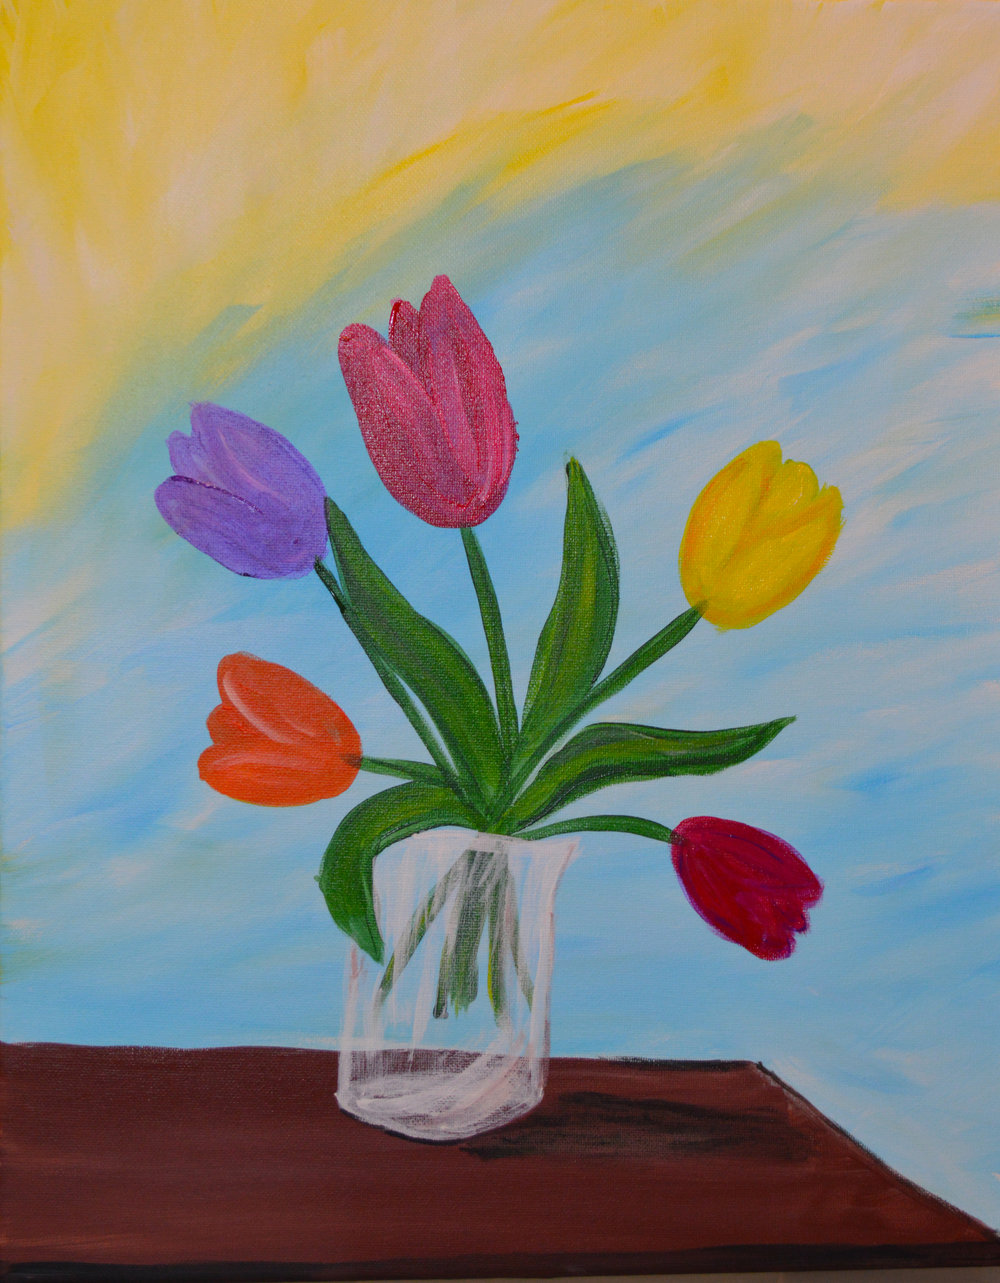 Tulips_colors.jpg